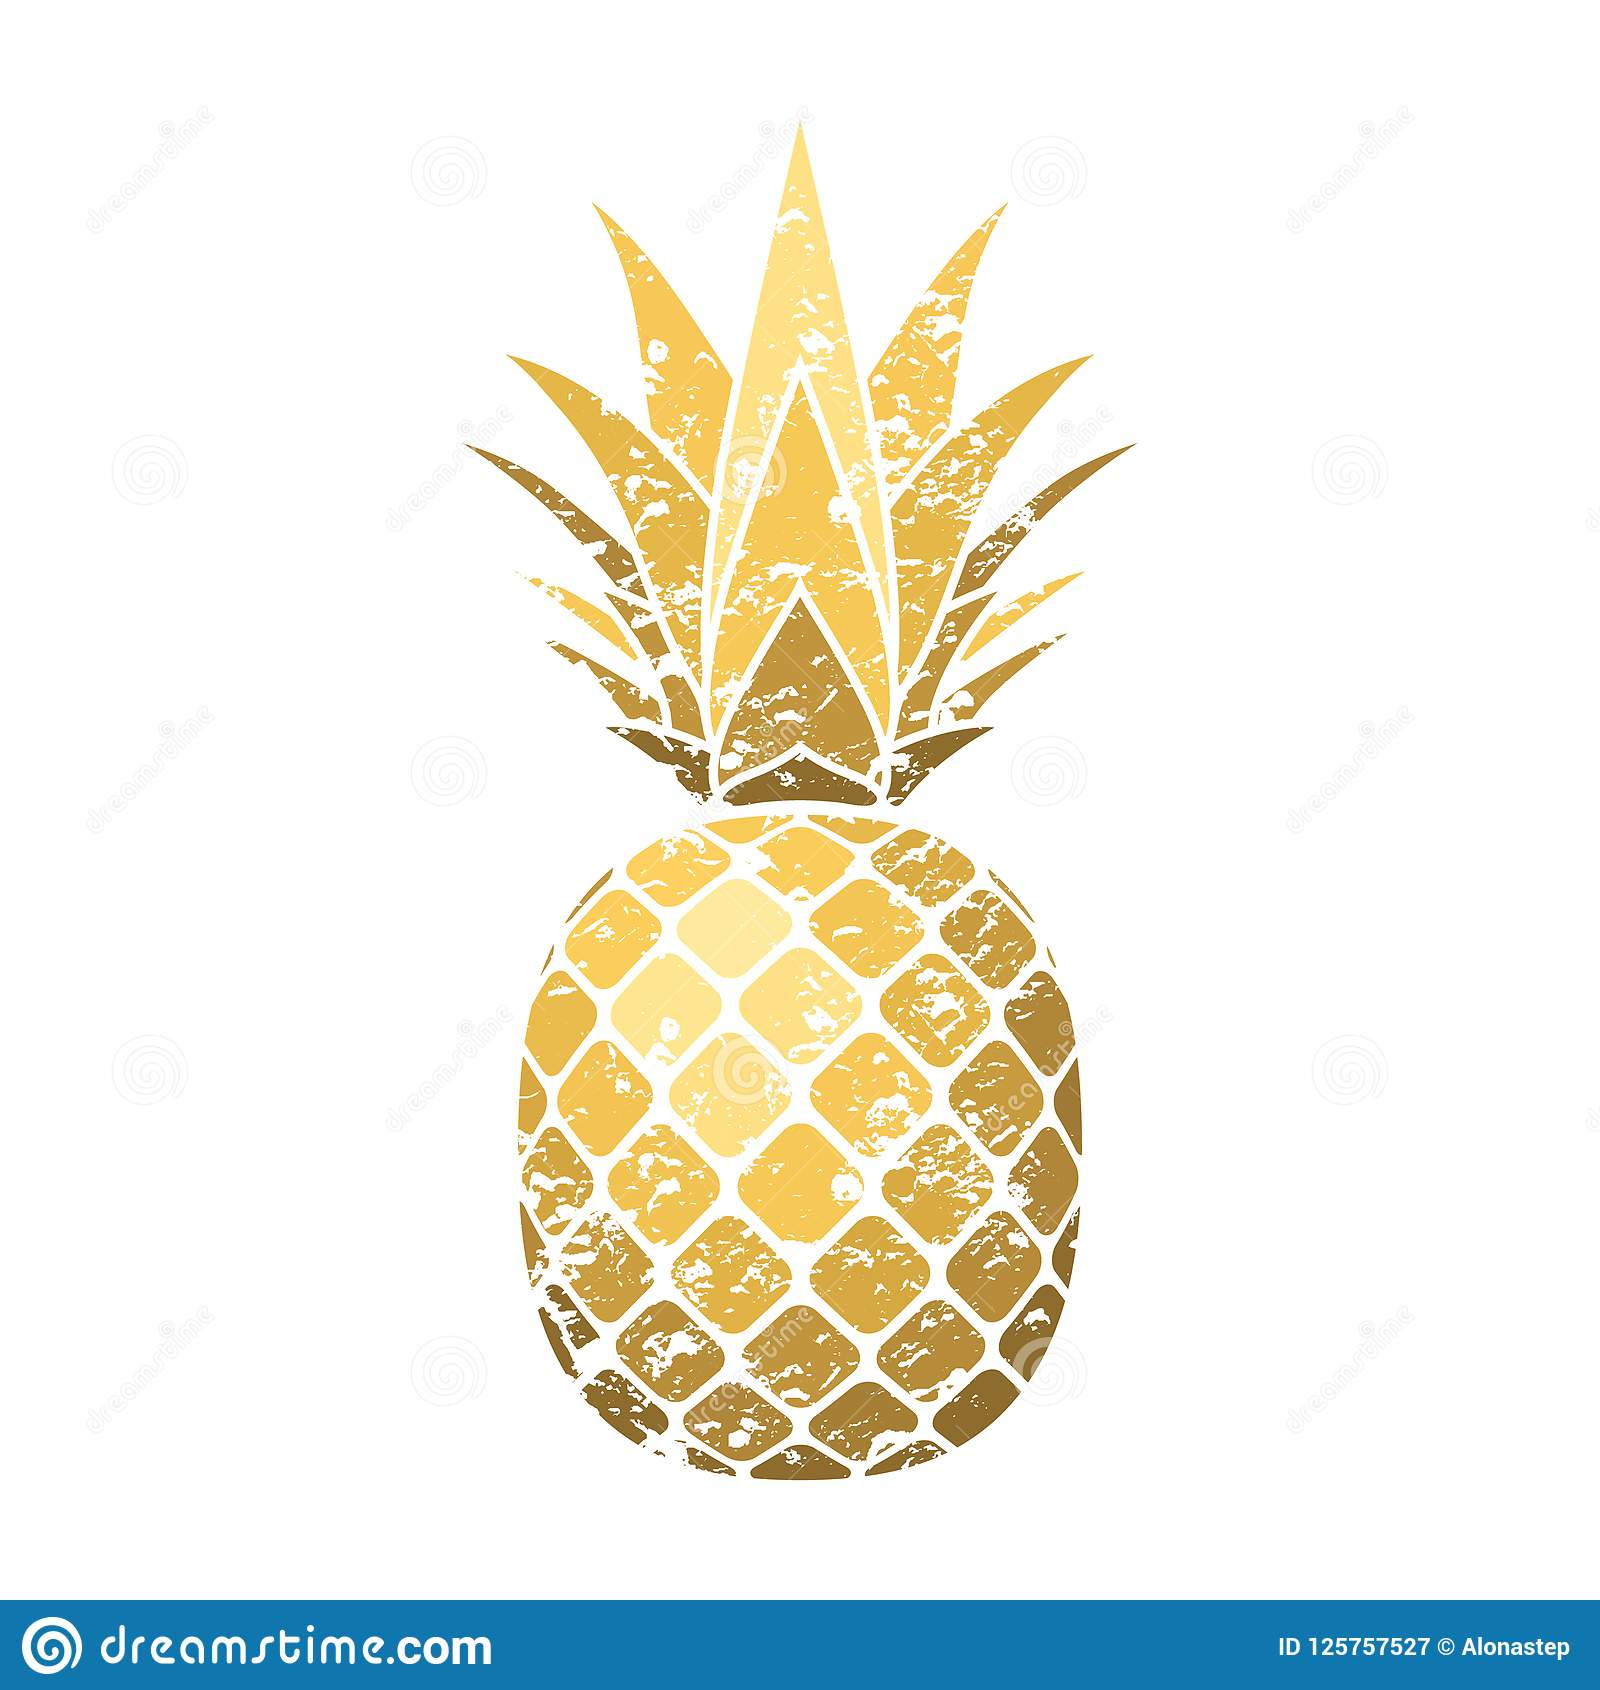 Pineapple grunge with leaf. Tropical gold exotic fruit isolated white background. Symbol of organic food, summer